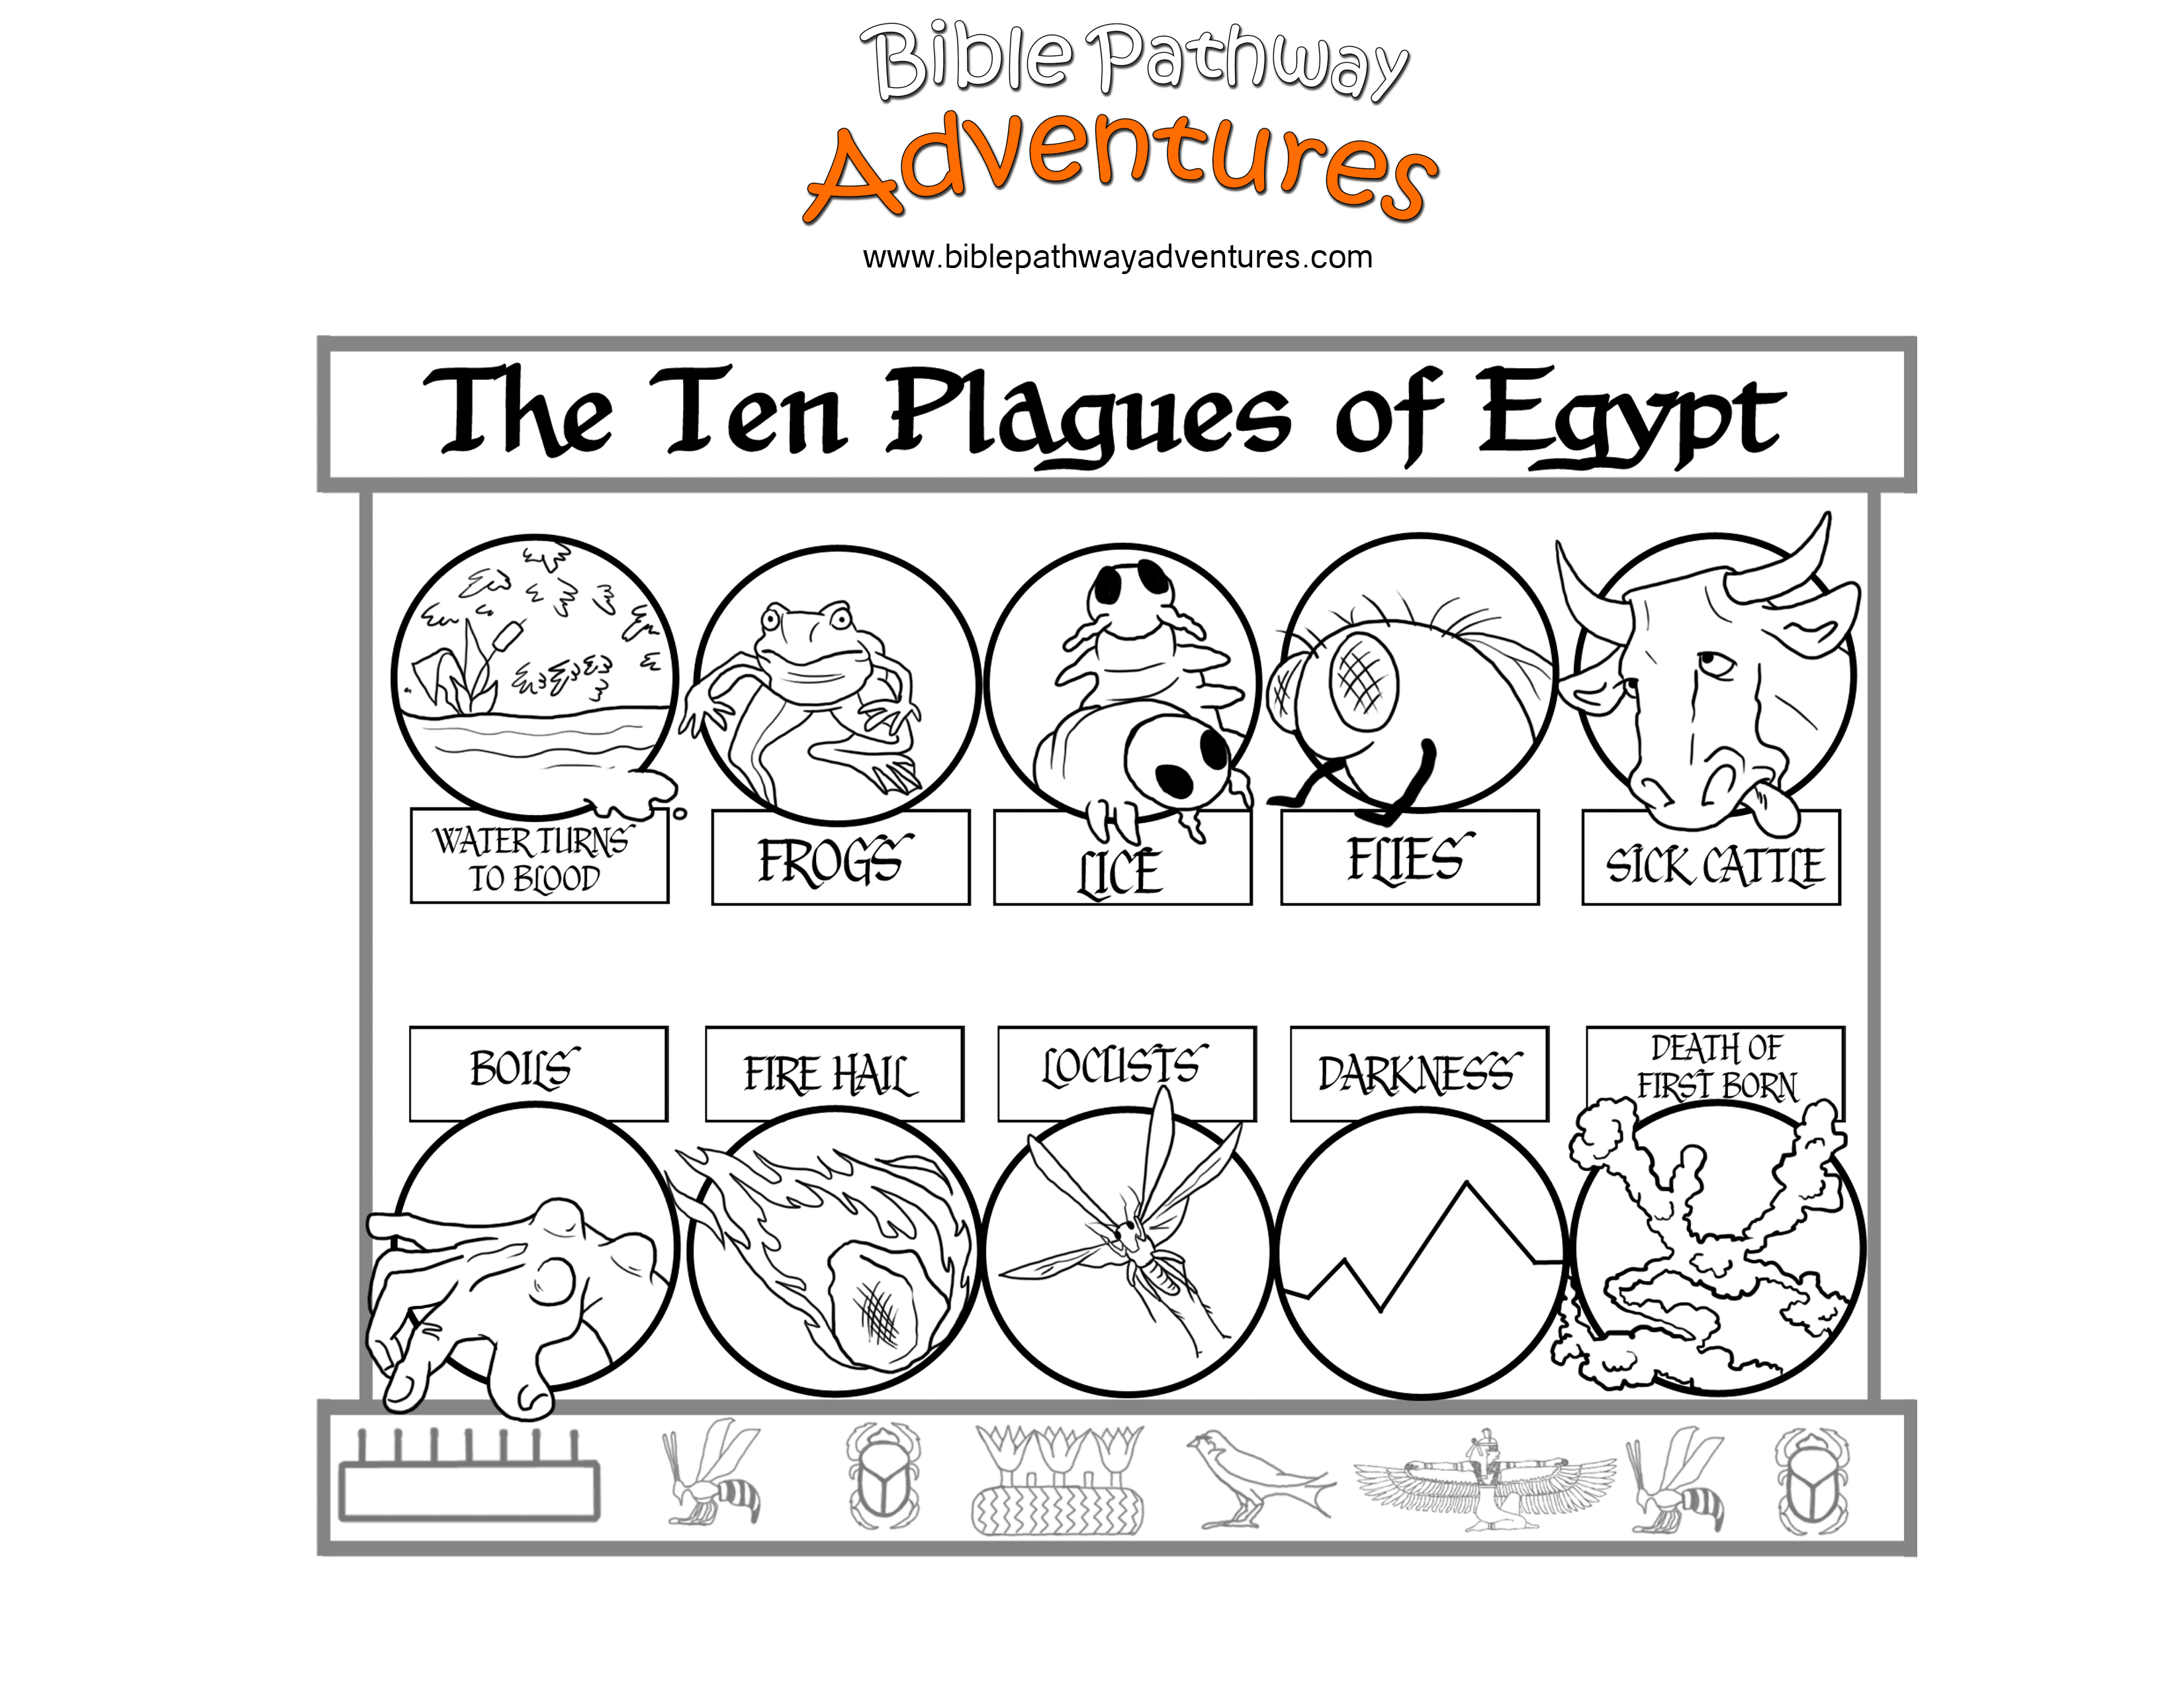 10 plagues of egypt coloring pages coloring page 10 plagues challah crumbs 10 plagues 10 plagues pages egypt coloring of